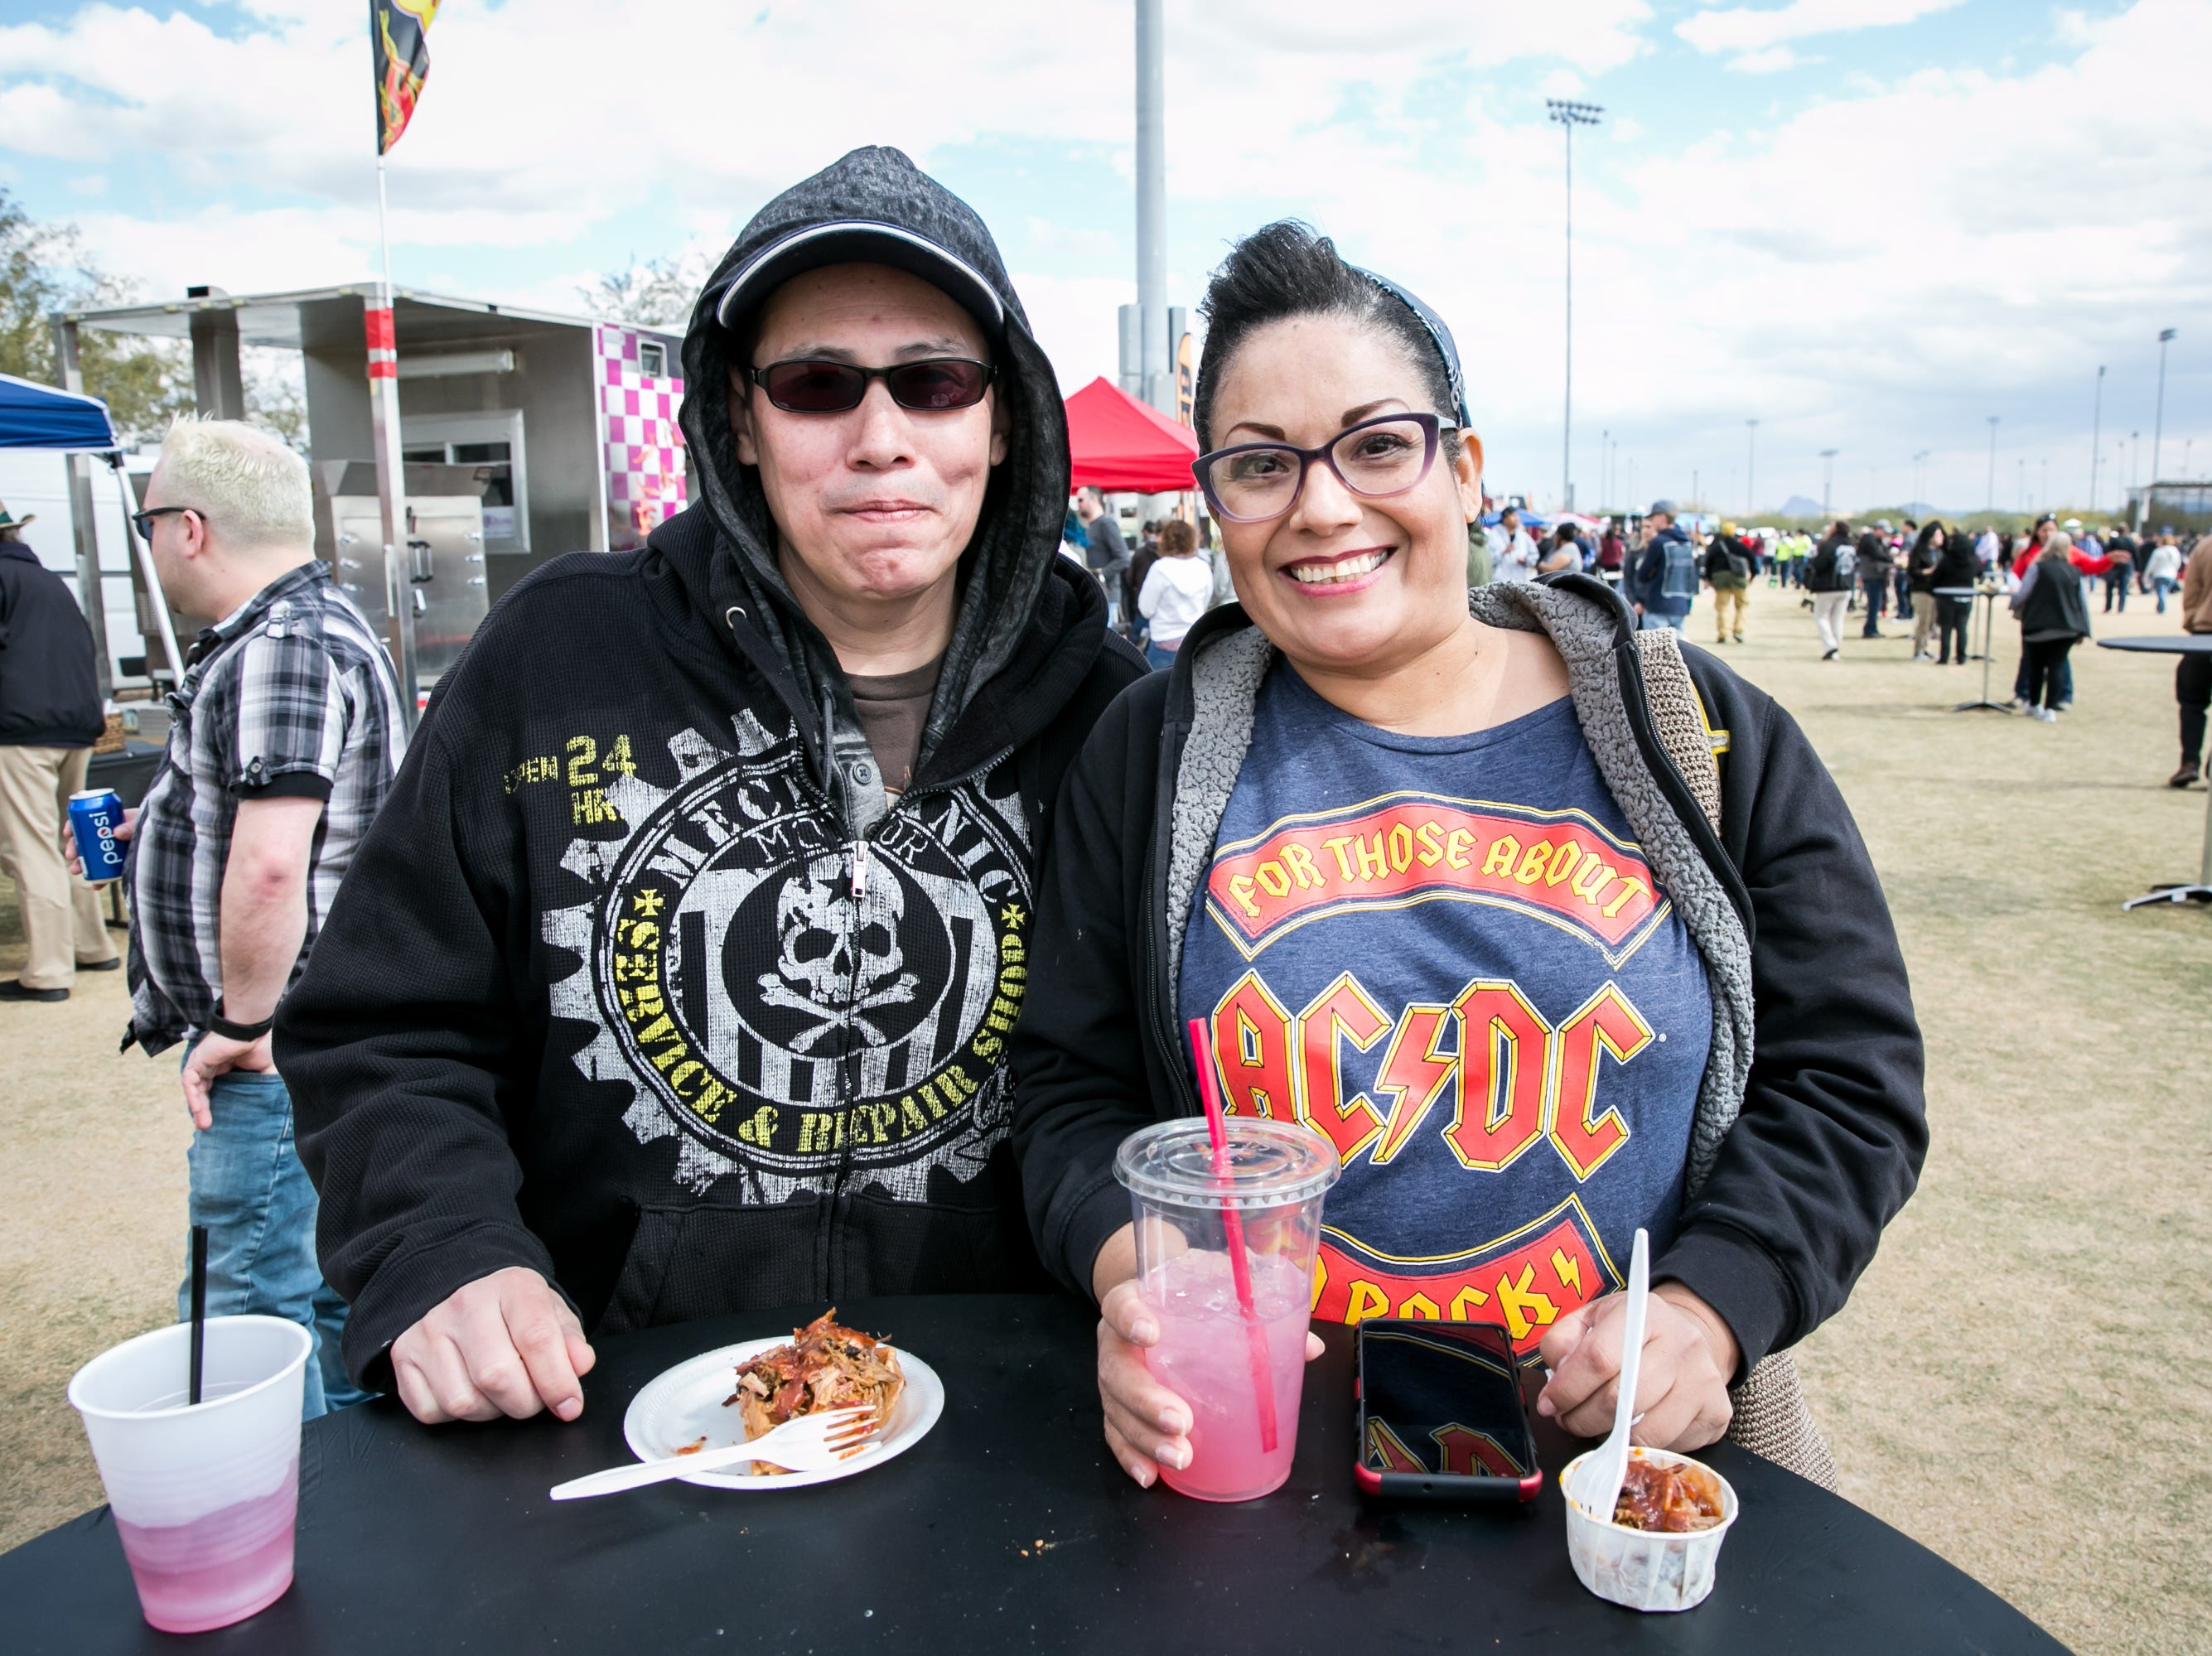 Great food was saluted during the Street Eats Food Truck Festival at Salt River Fields near Scottsdale on Feb. 17, 2019.